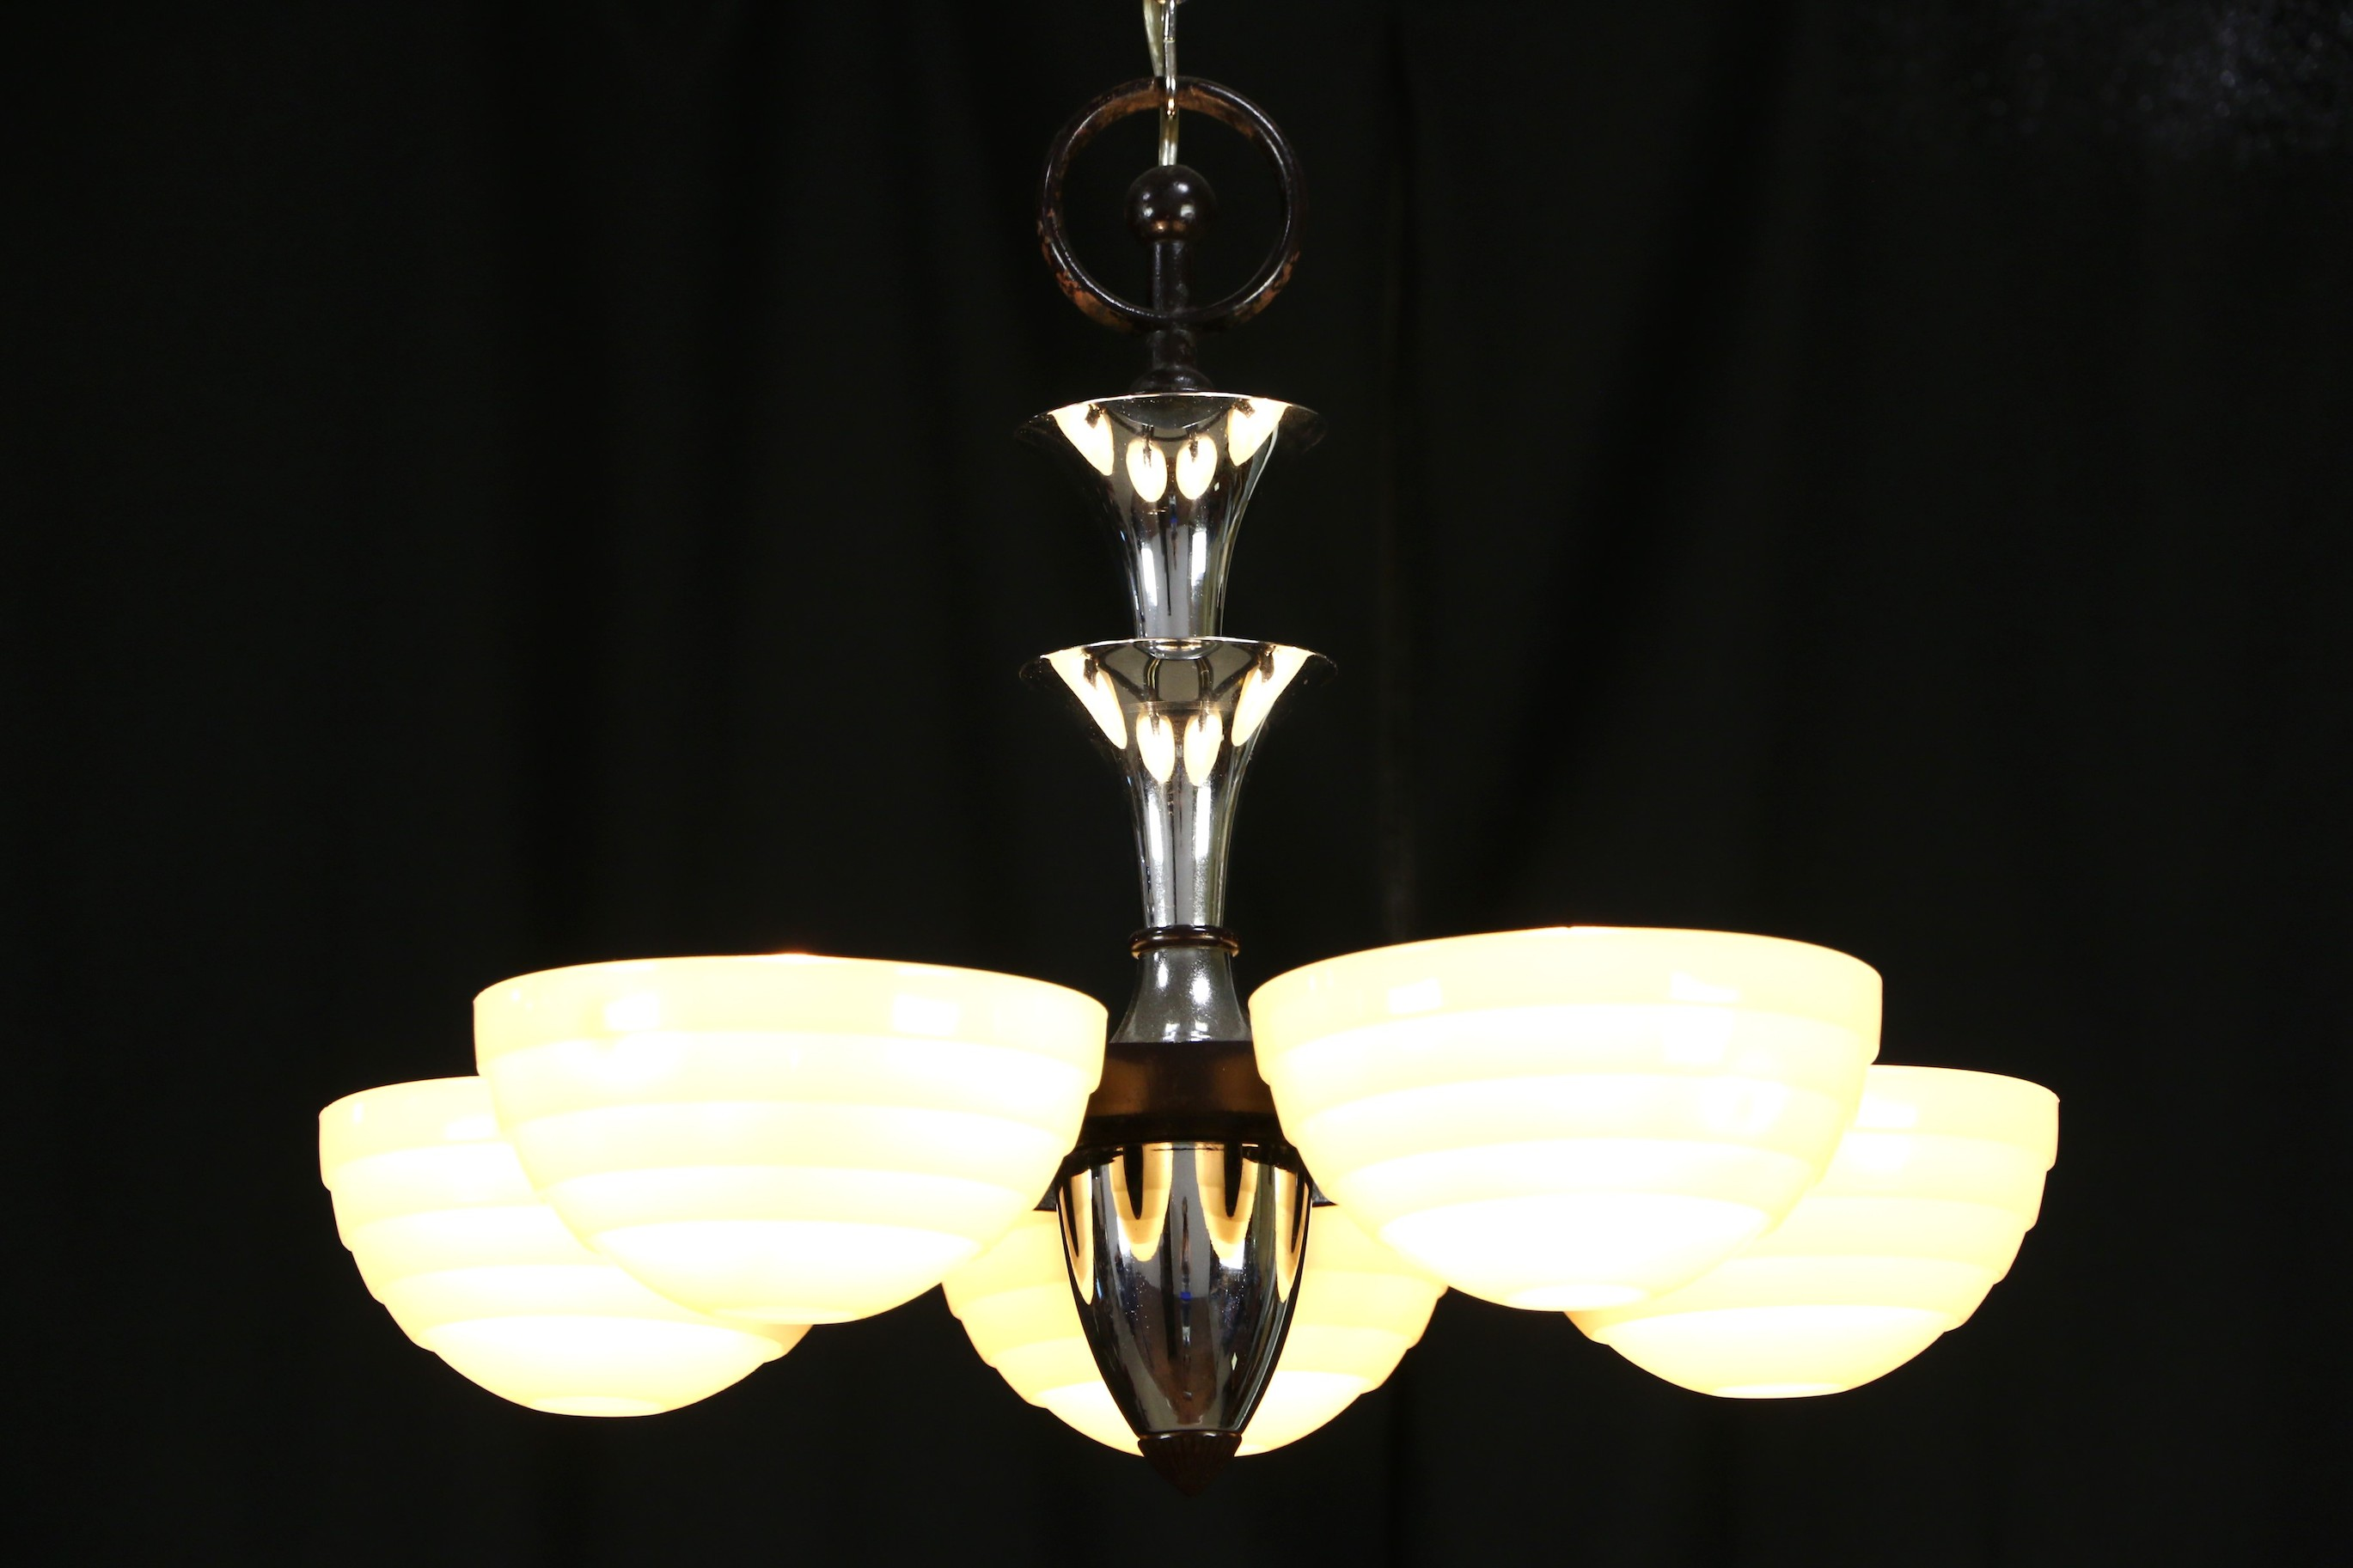 collection chandelier fixture inspirational glass stock antique lamp small light of shades fresh manufacture